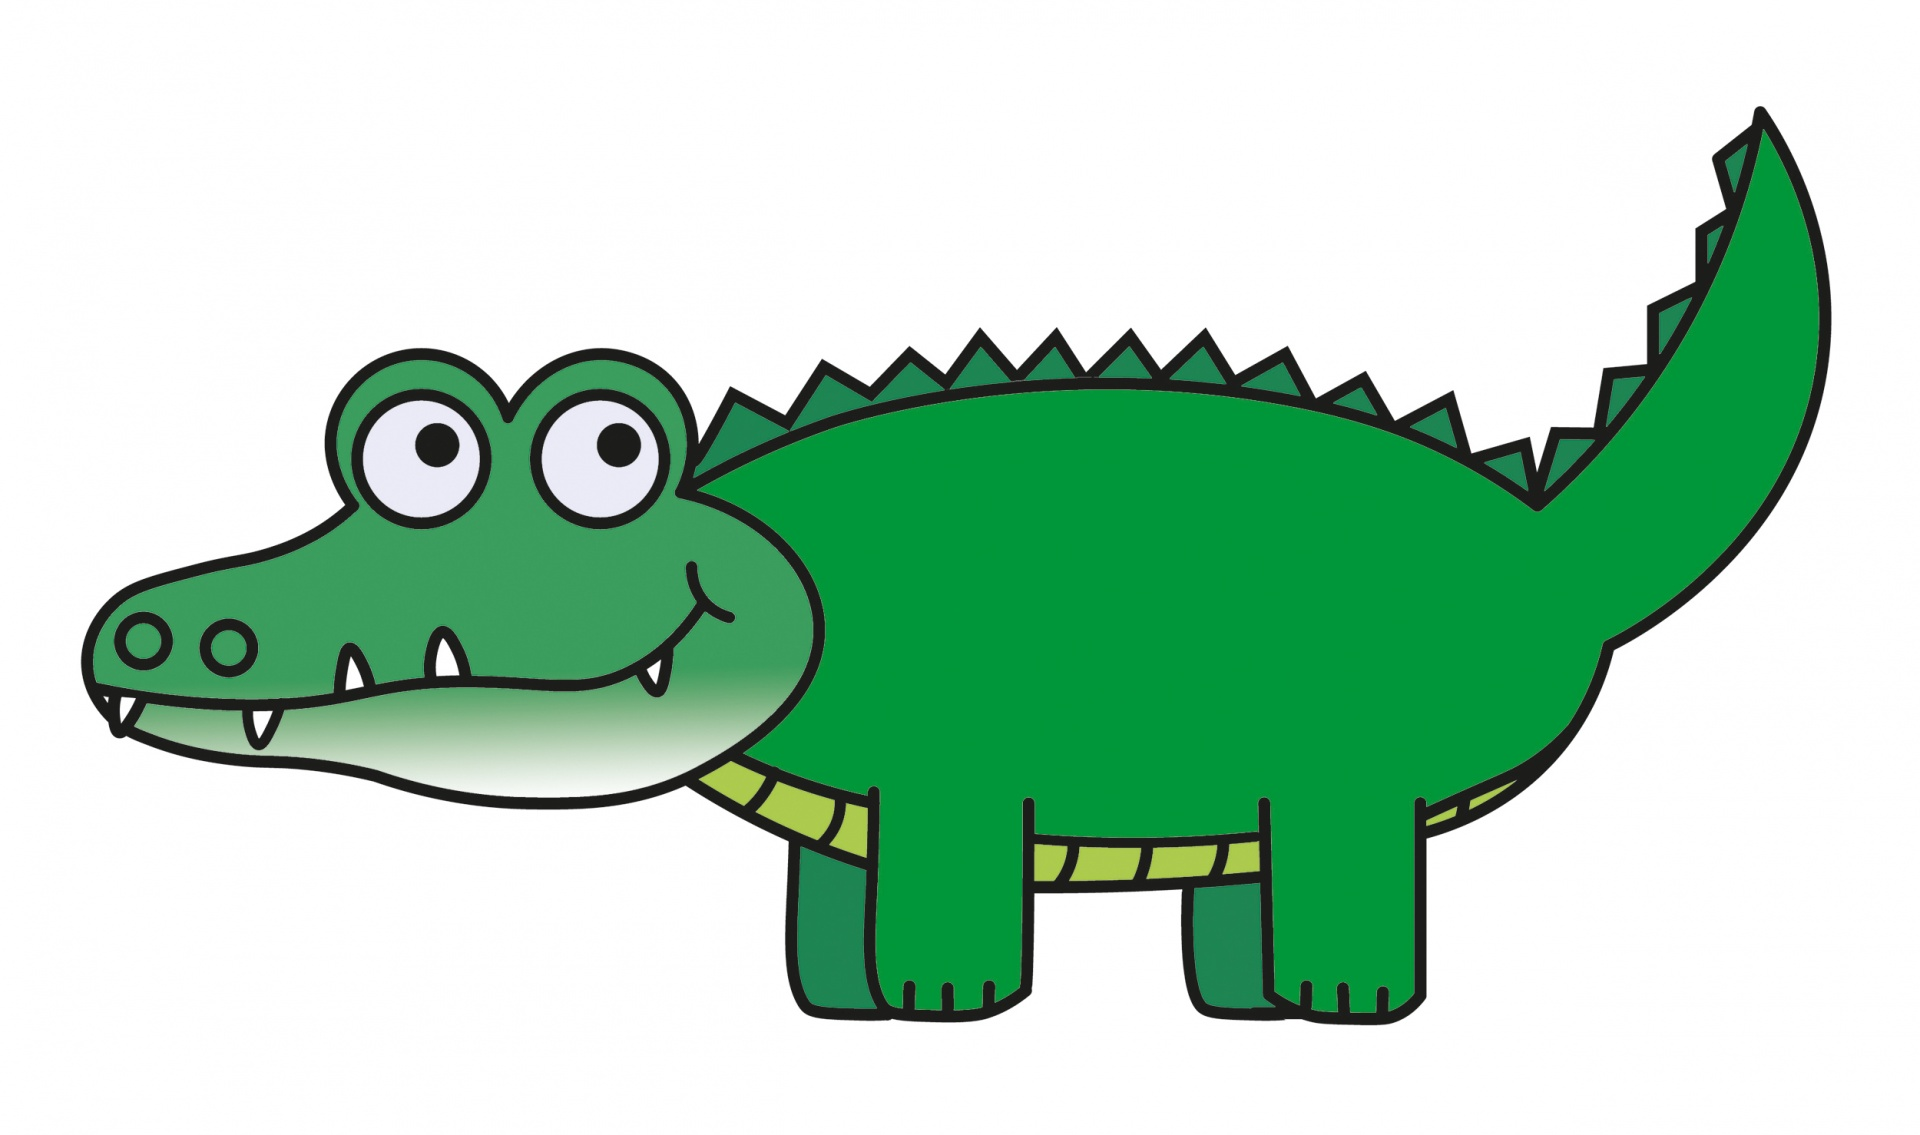 Alligator,cartoon,cartoon alligator,alligator clip art,crocodile.